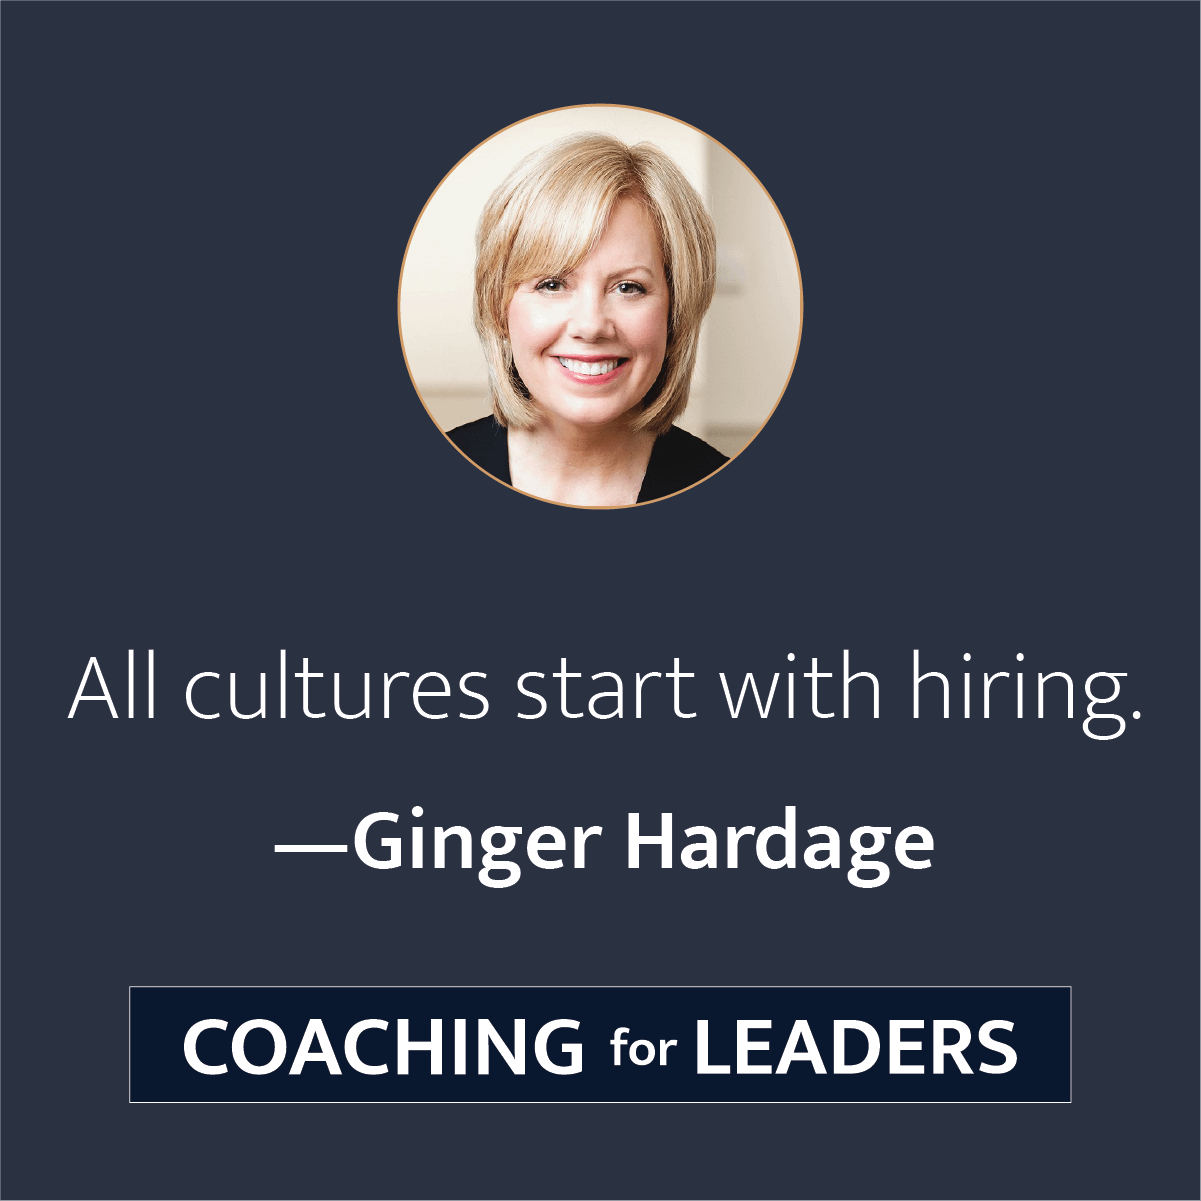 All cultures start with hiring.